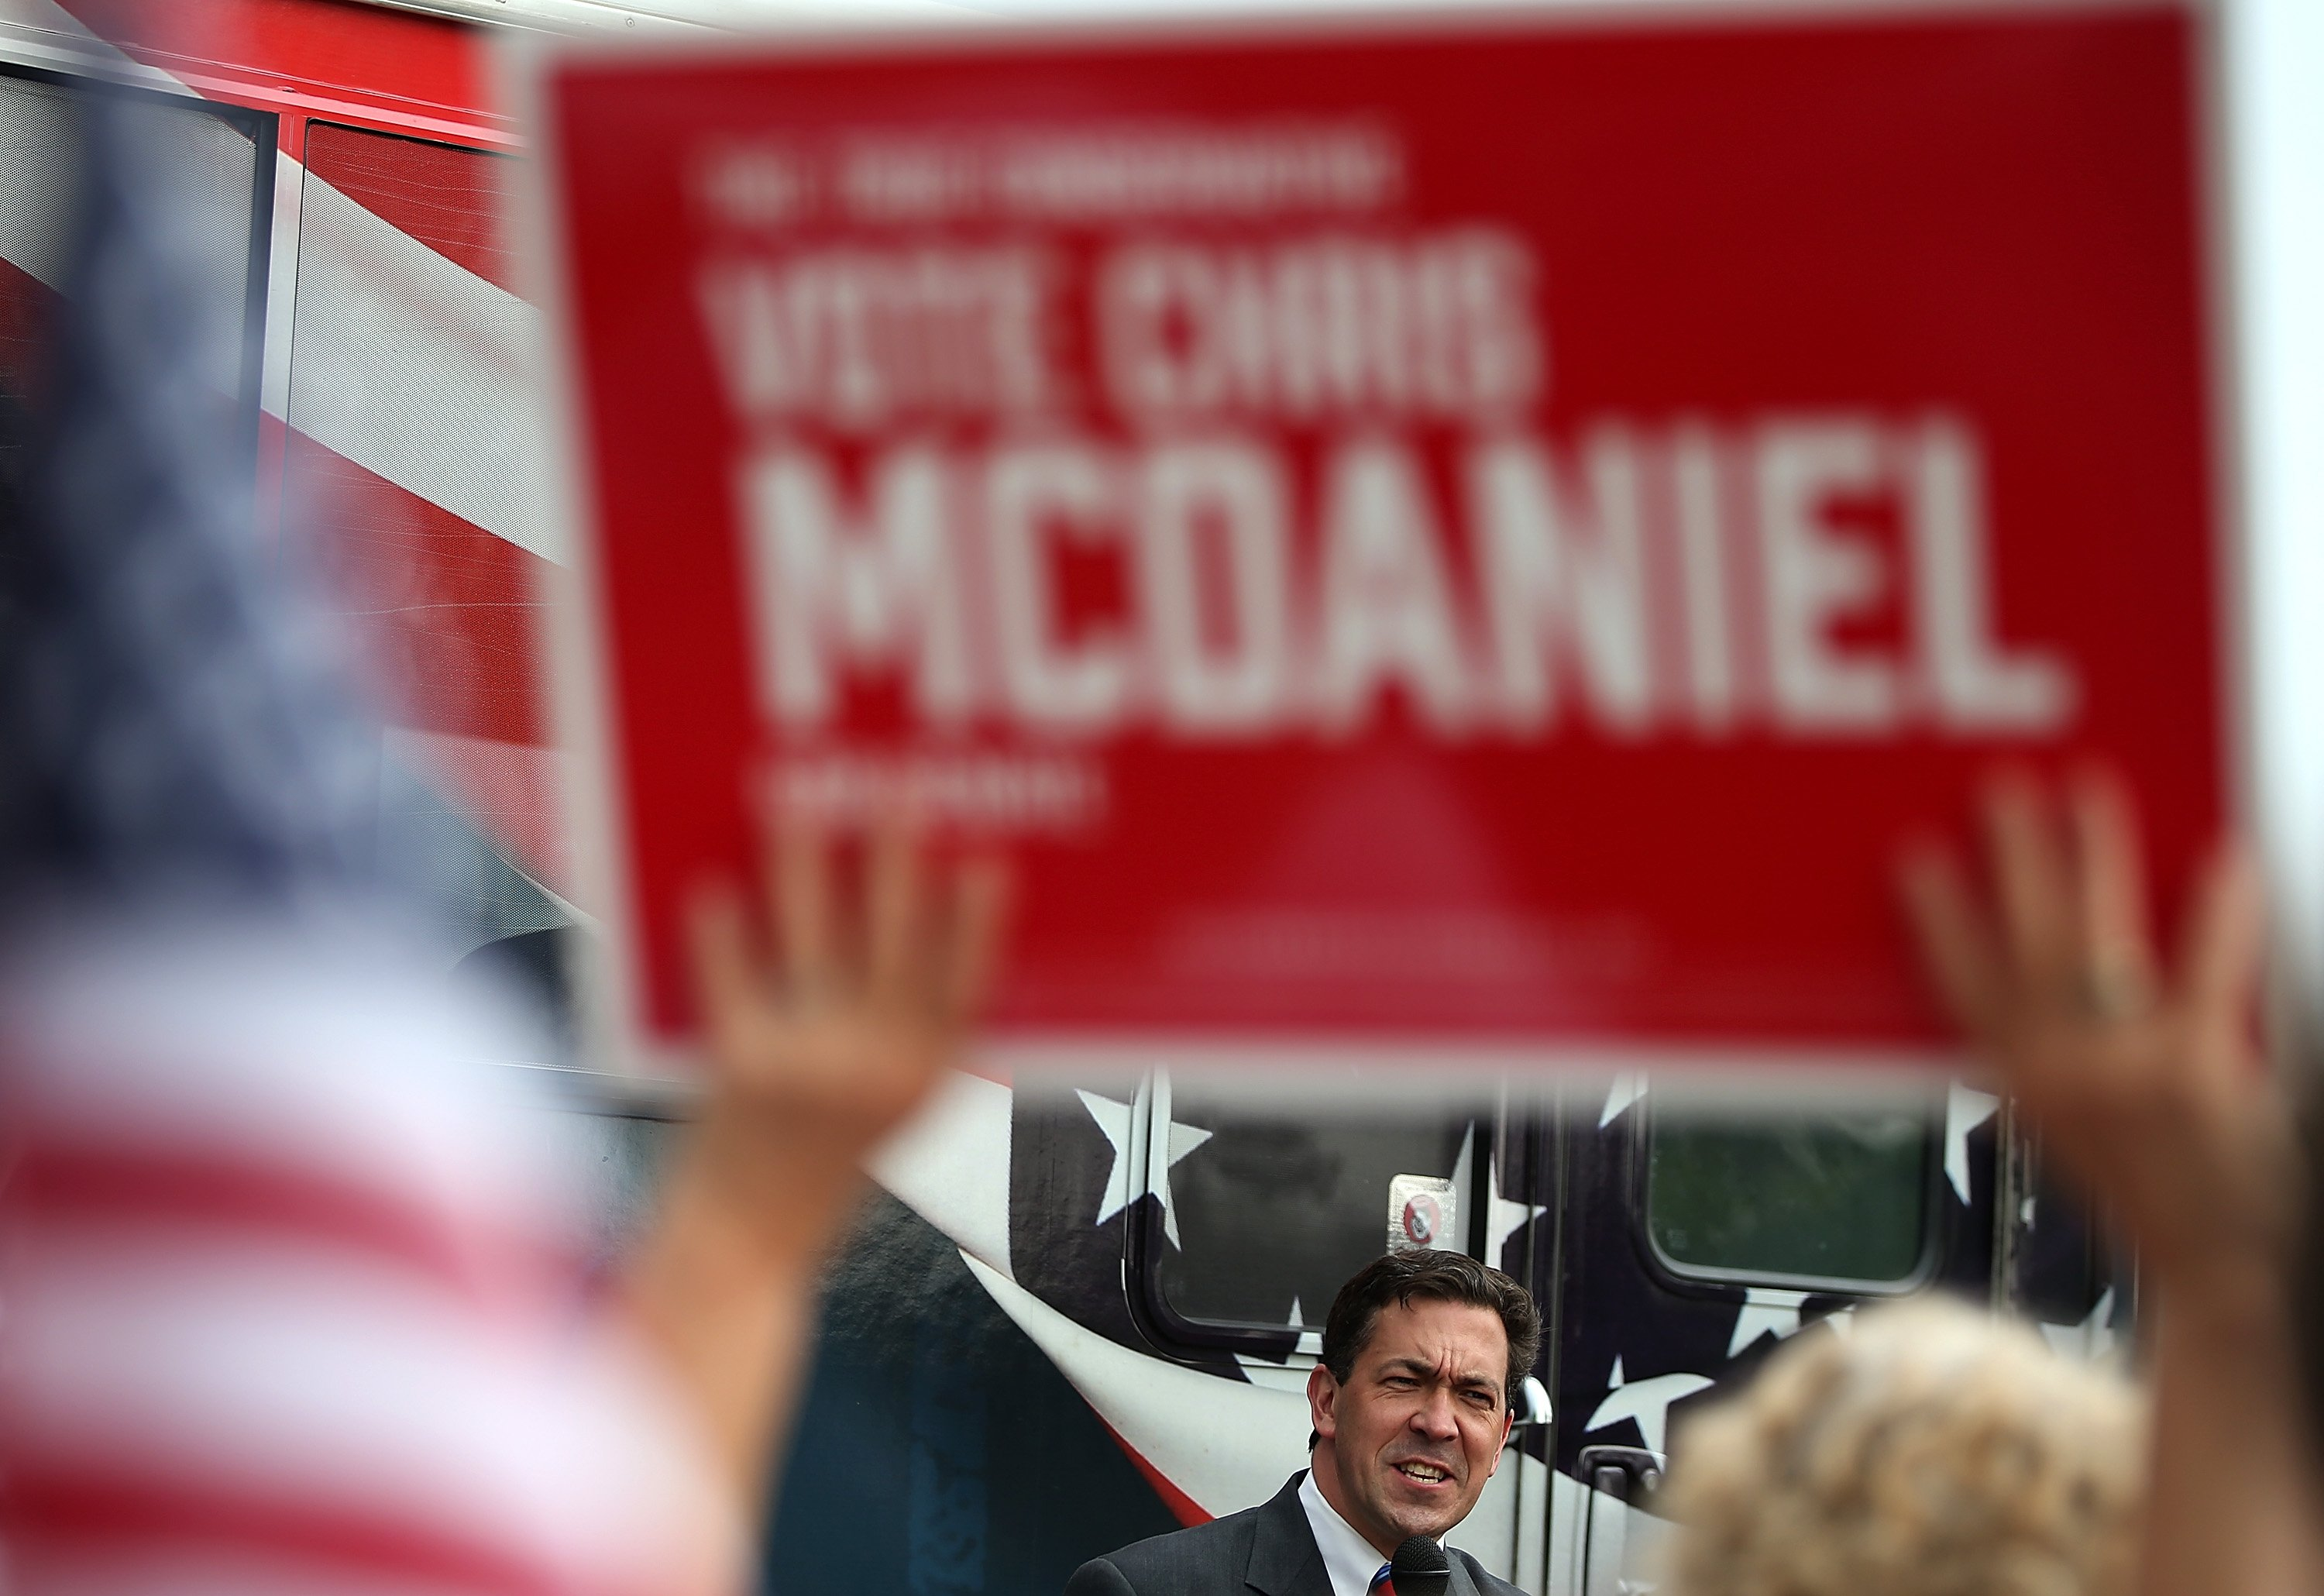 Republican candidate for U.S. Senate, Mississippi State Sen. Chris McDaniel speaks during a campaign rally on June 23, 2014 in Flowood, Miss.